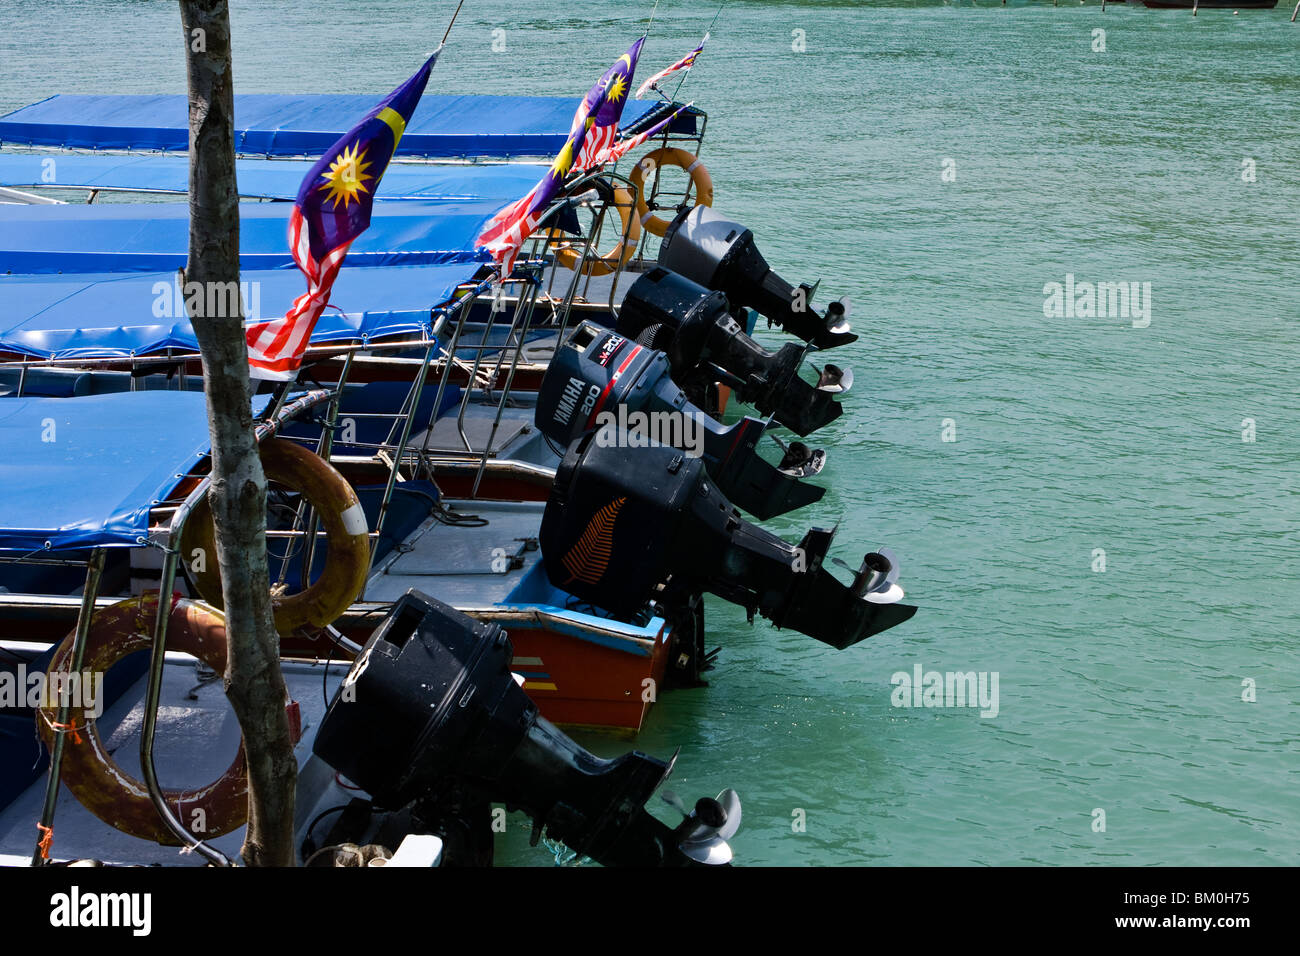 Outboard motors on Langkawi tourist boats - Stock Image